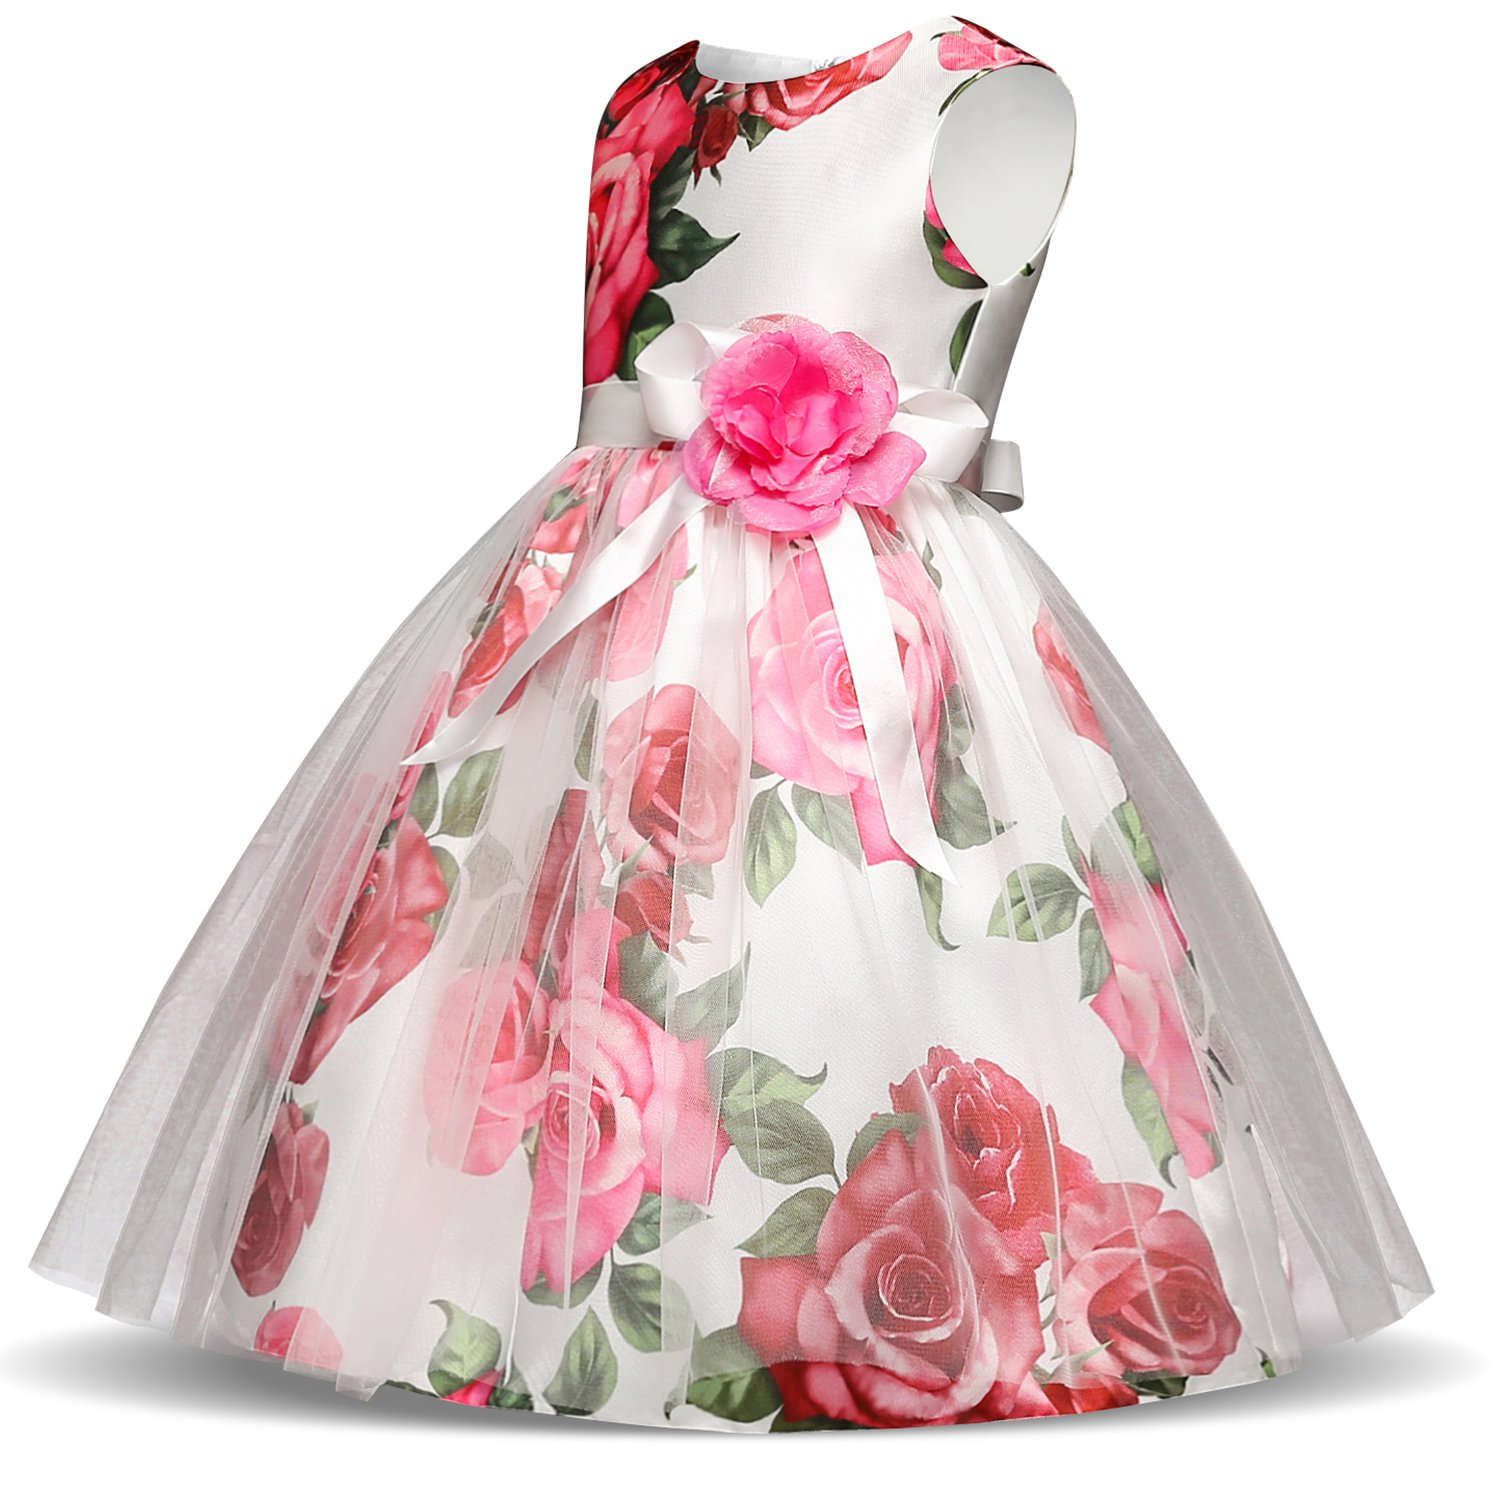 NNJXD Girl Flower Printed Cotton Elegant Tulle Bow Belt Princess Dress Size (130) 5-6 Years Pink by NNJXD (Image #3)